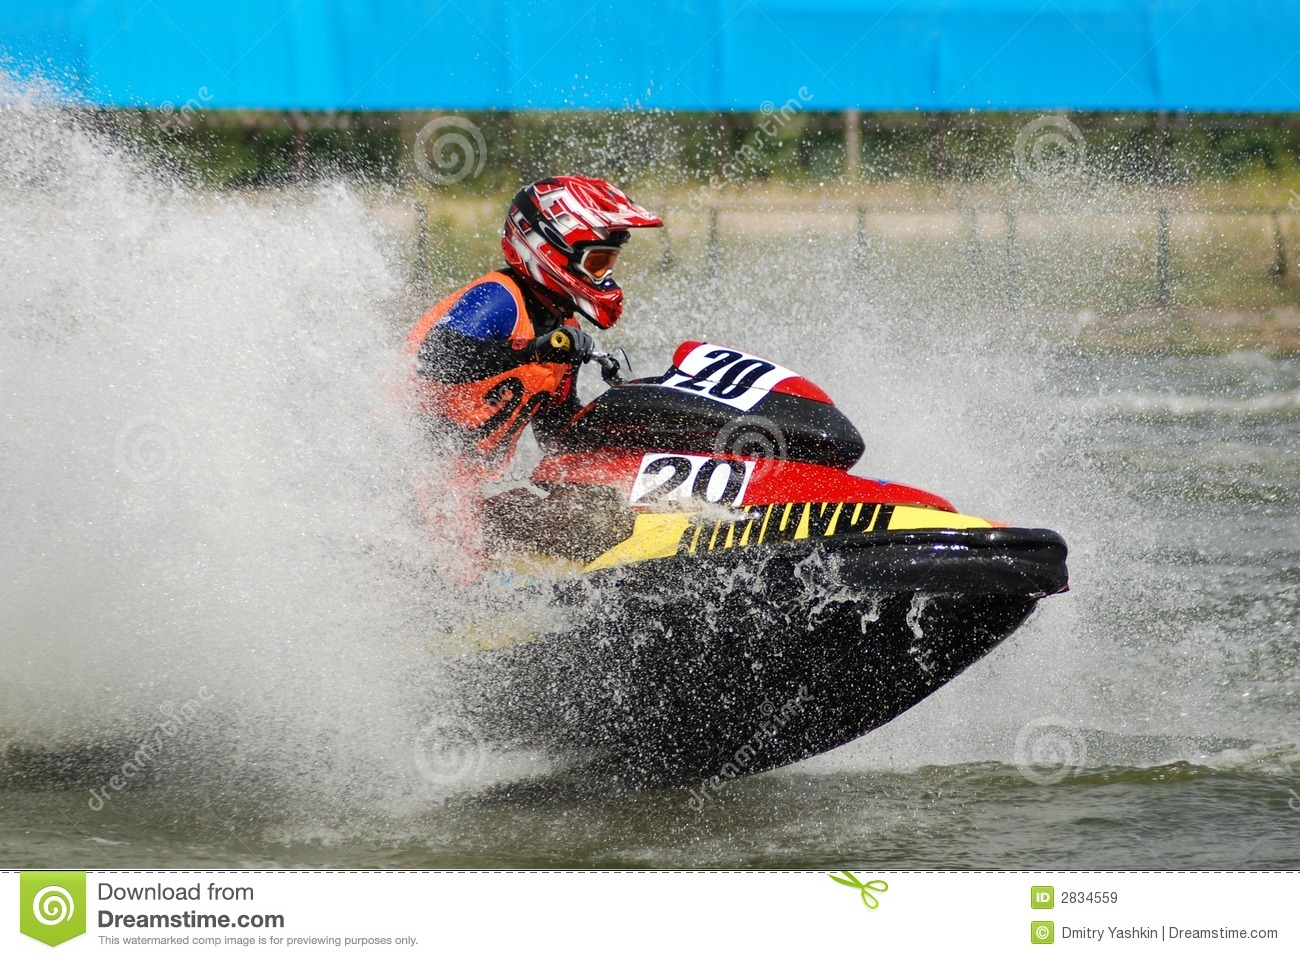 High-speed jetski6